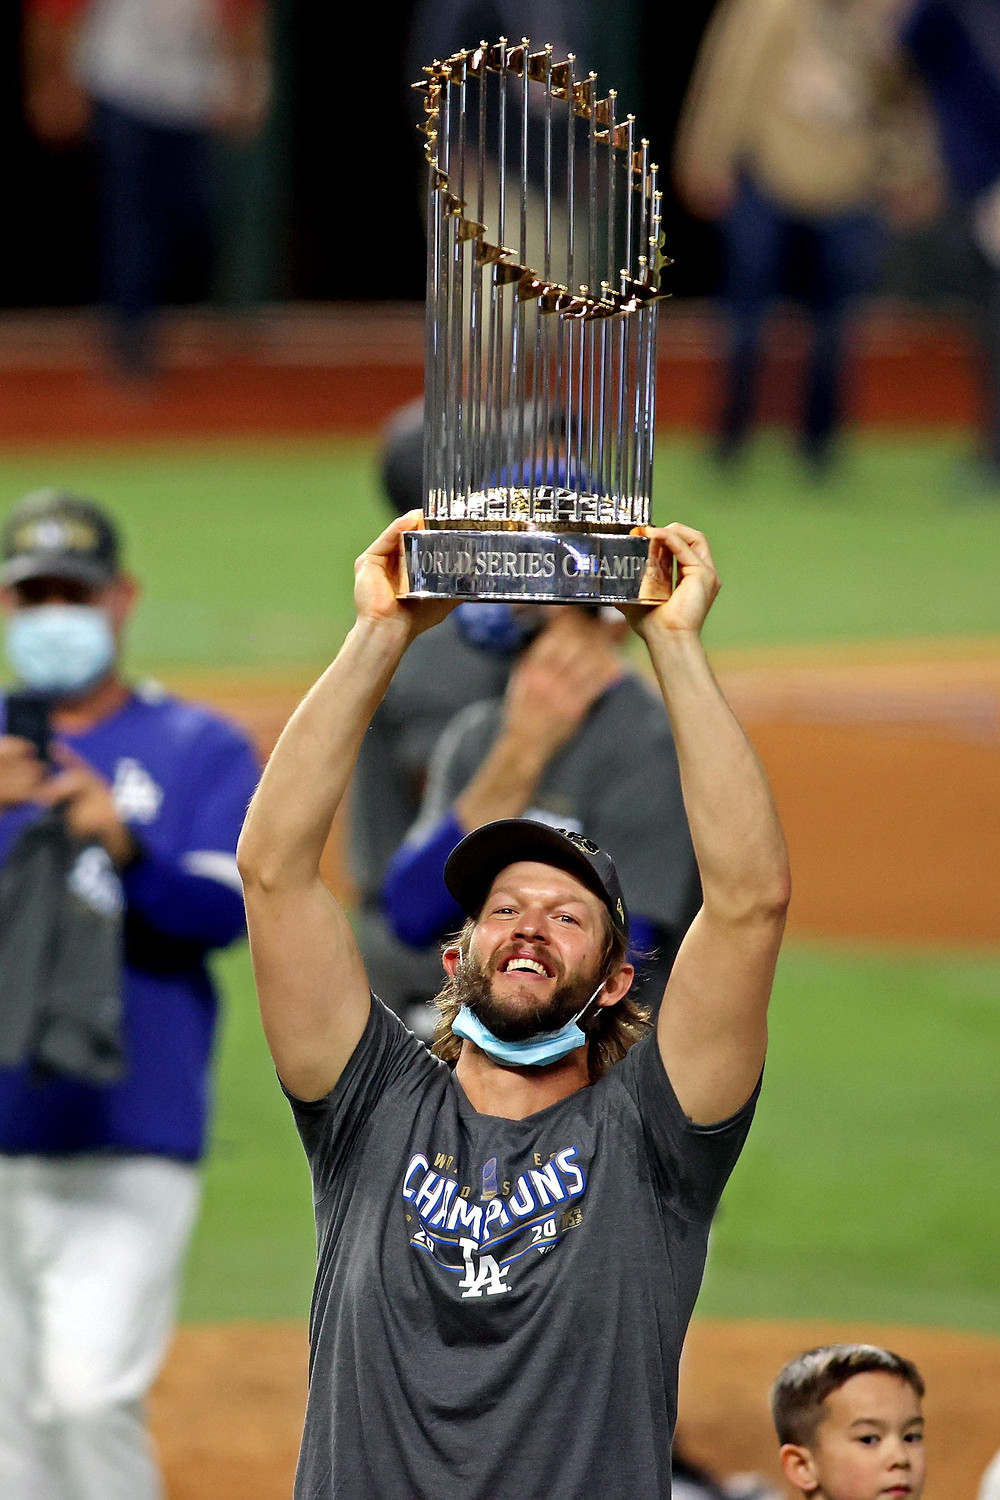 Future Hall Of Famer Clayton Kershaw holds his first World Series trophy at the age of 32